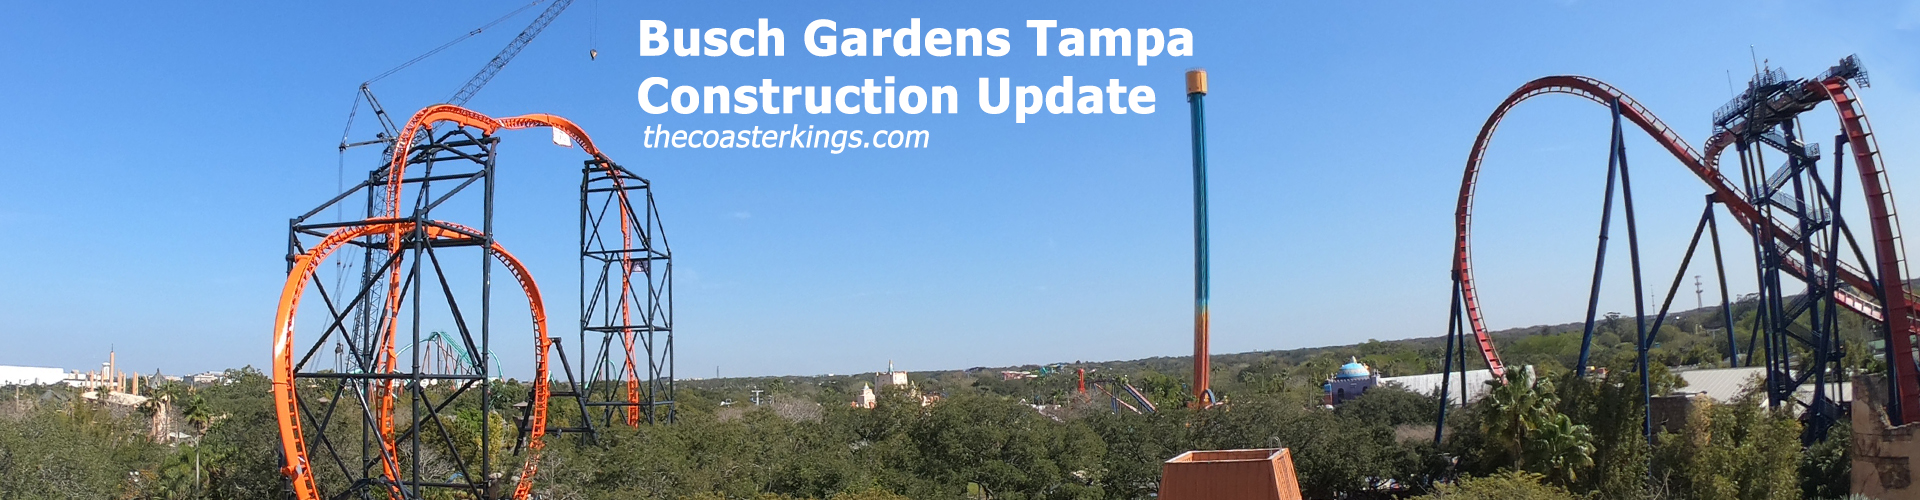 Busch Gardens Tampa Construction Update - February 2019